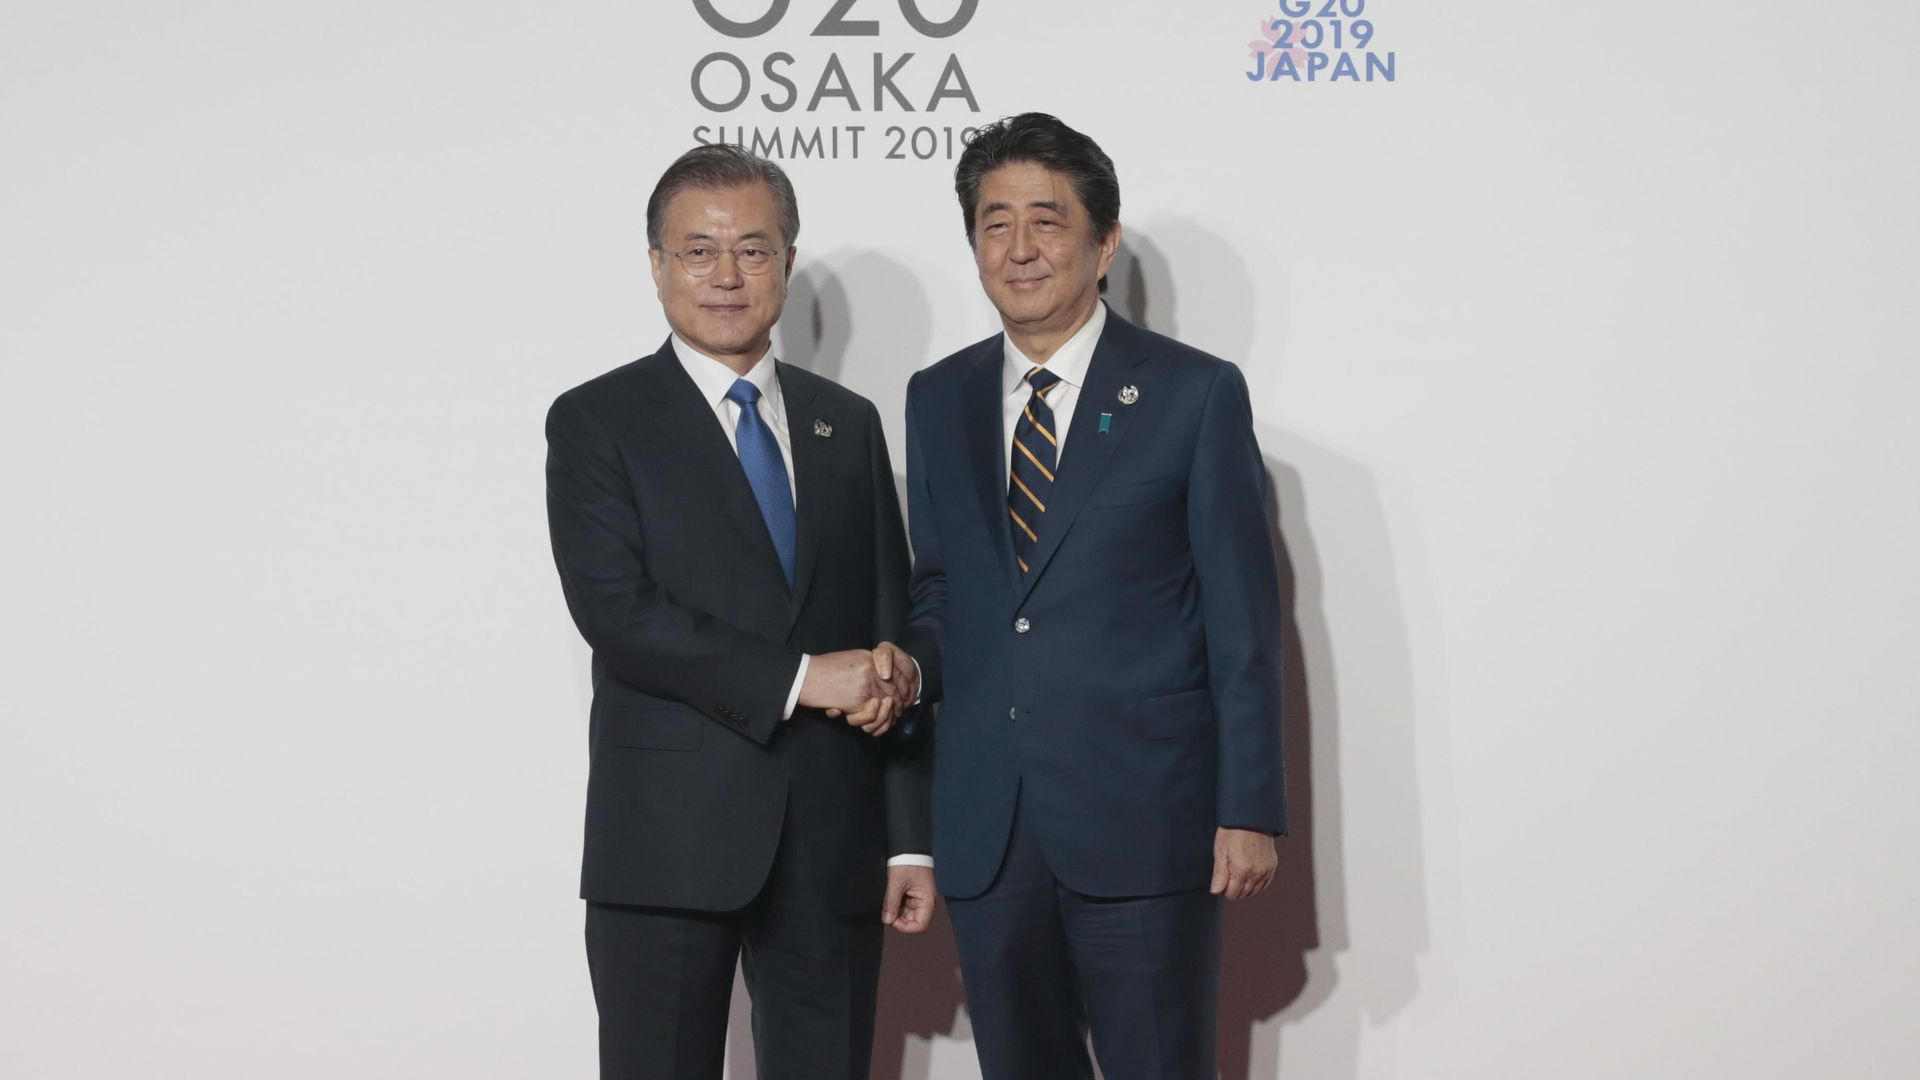 South Korea President Moon Jae-in is welcomed by Japanese Prime Minister Shinzo Abe on the first day of the G20 summit in Osaka, Japan